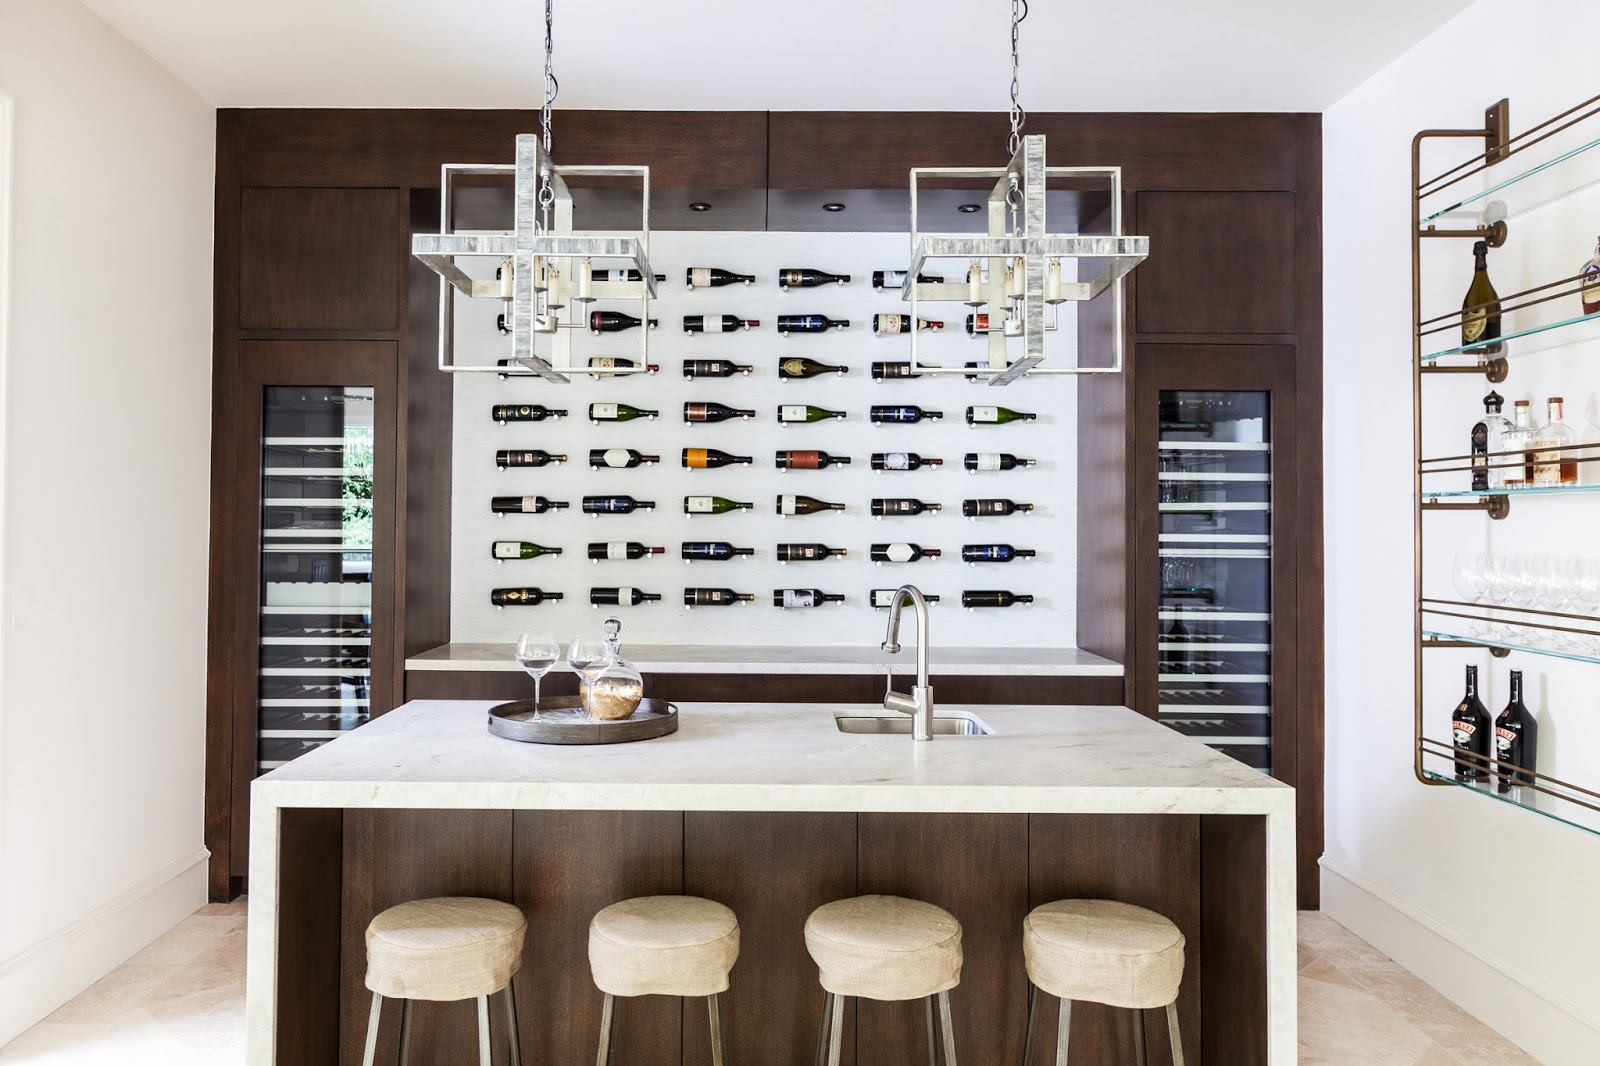 Outstanding Dining Room Wine Bar Gallery - Image design house plan ...